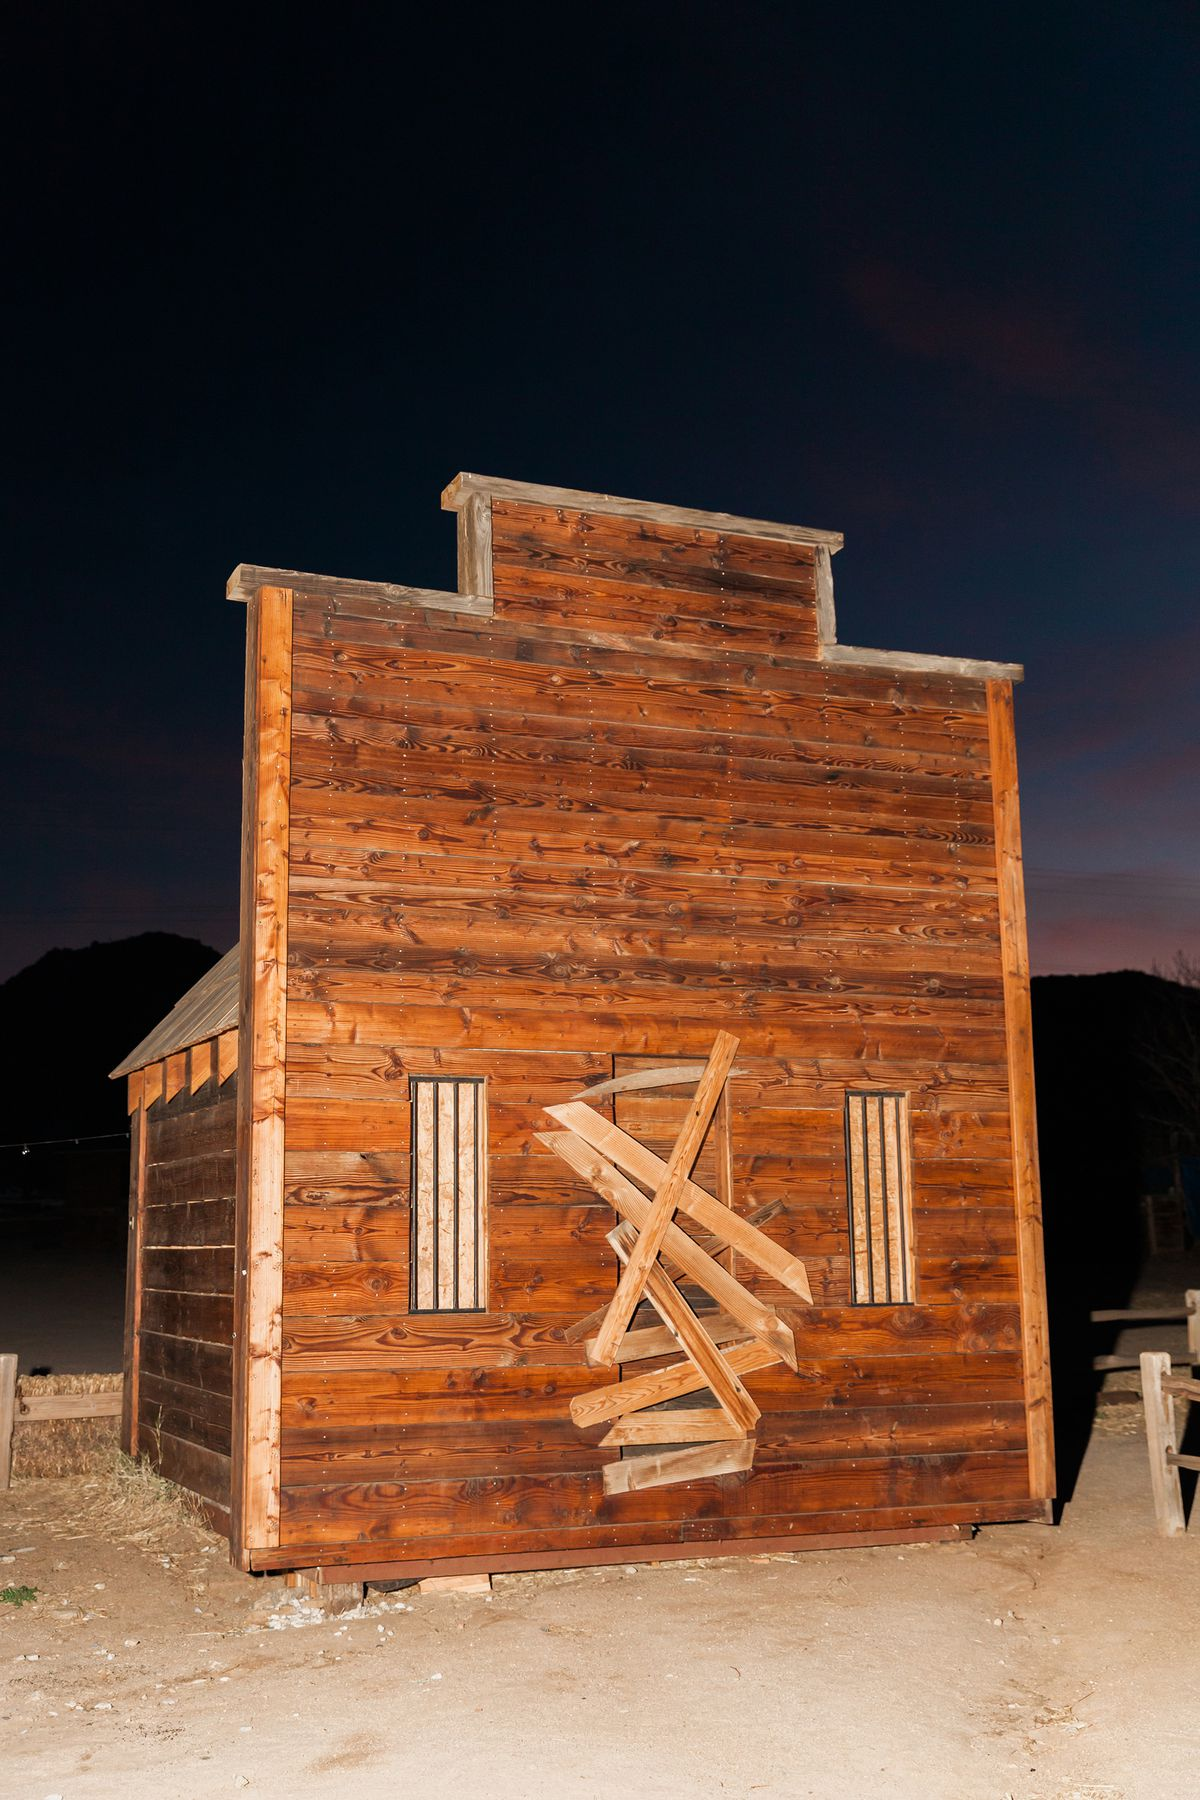 California desert ghost towns: Five destinations to visit